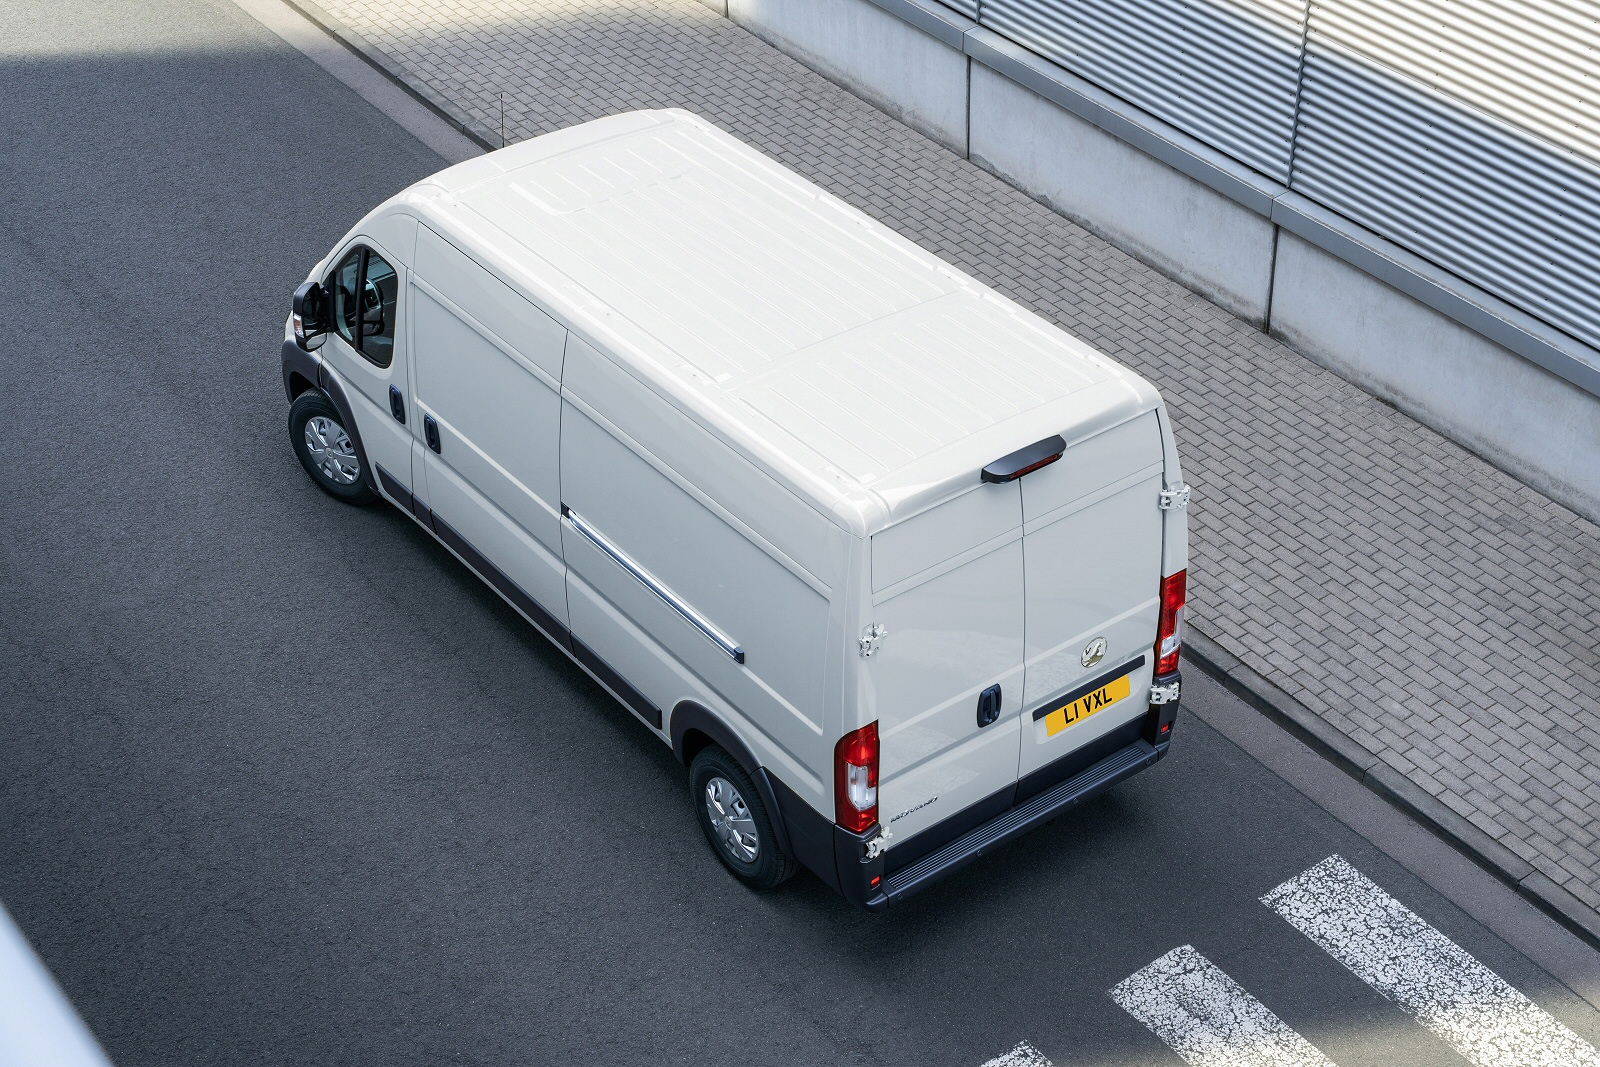 VAUXHALL MOVANO 3500 L3 DIESEL RWD 2.3 Turbo D 145ps H1 Chassis Cab